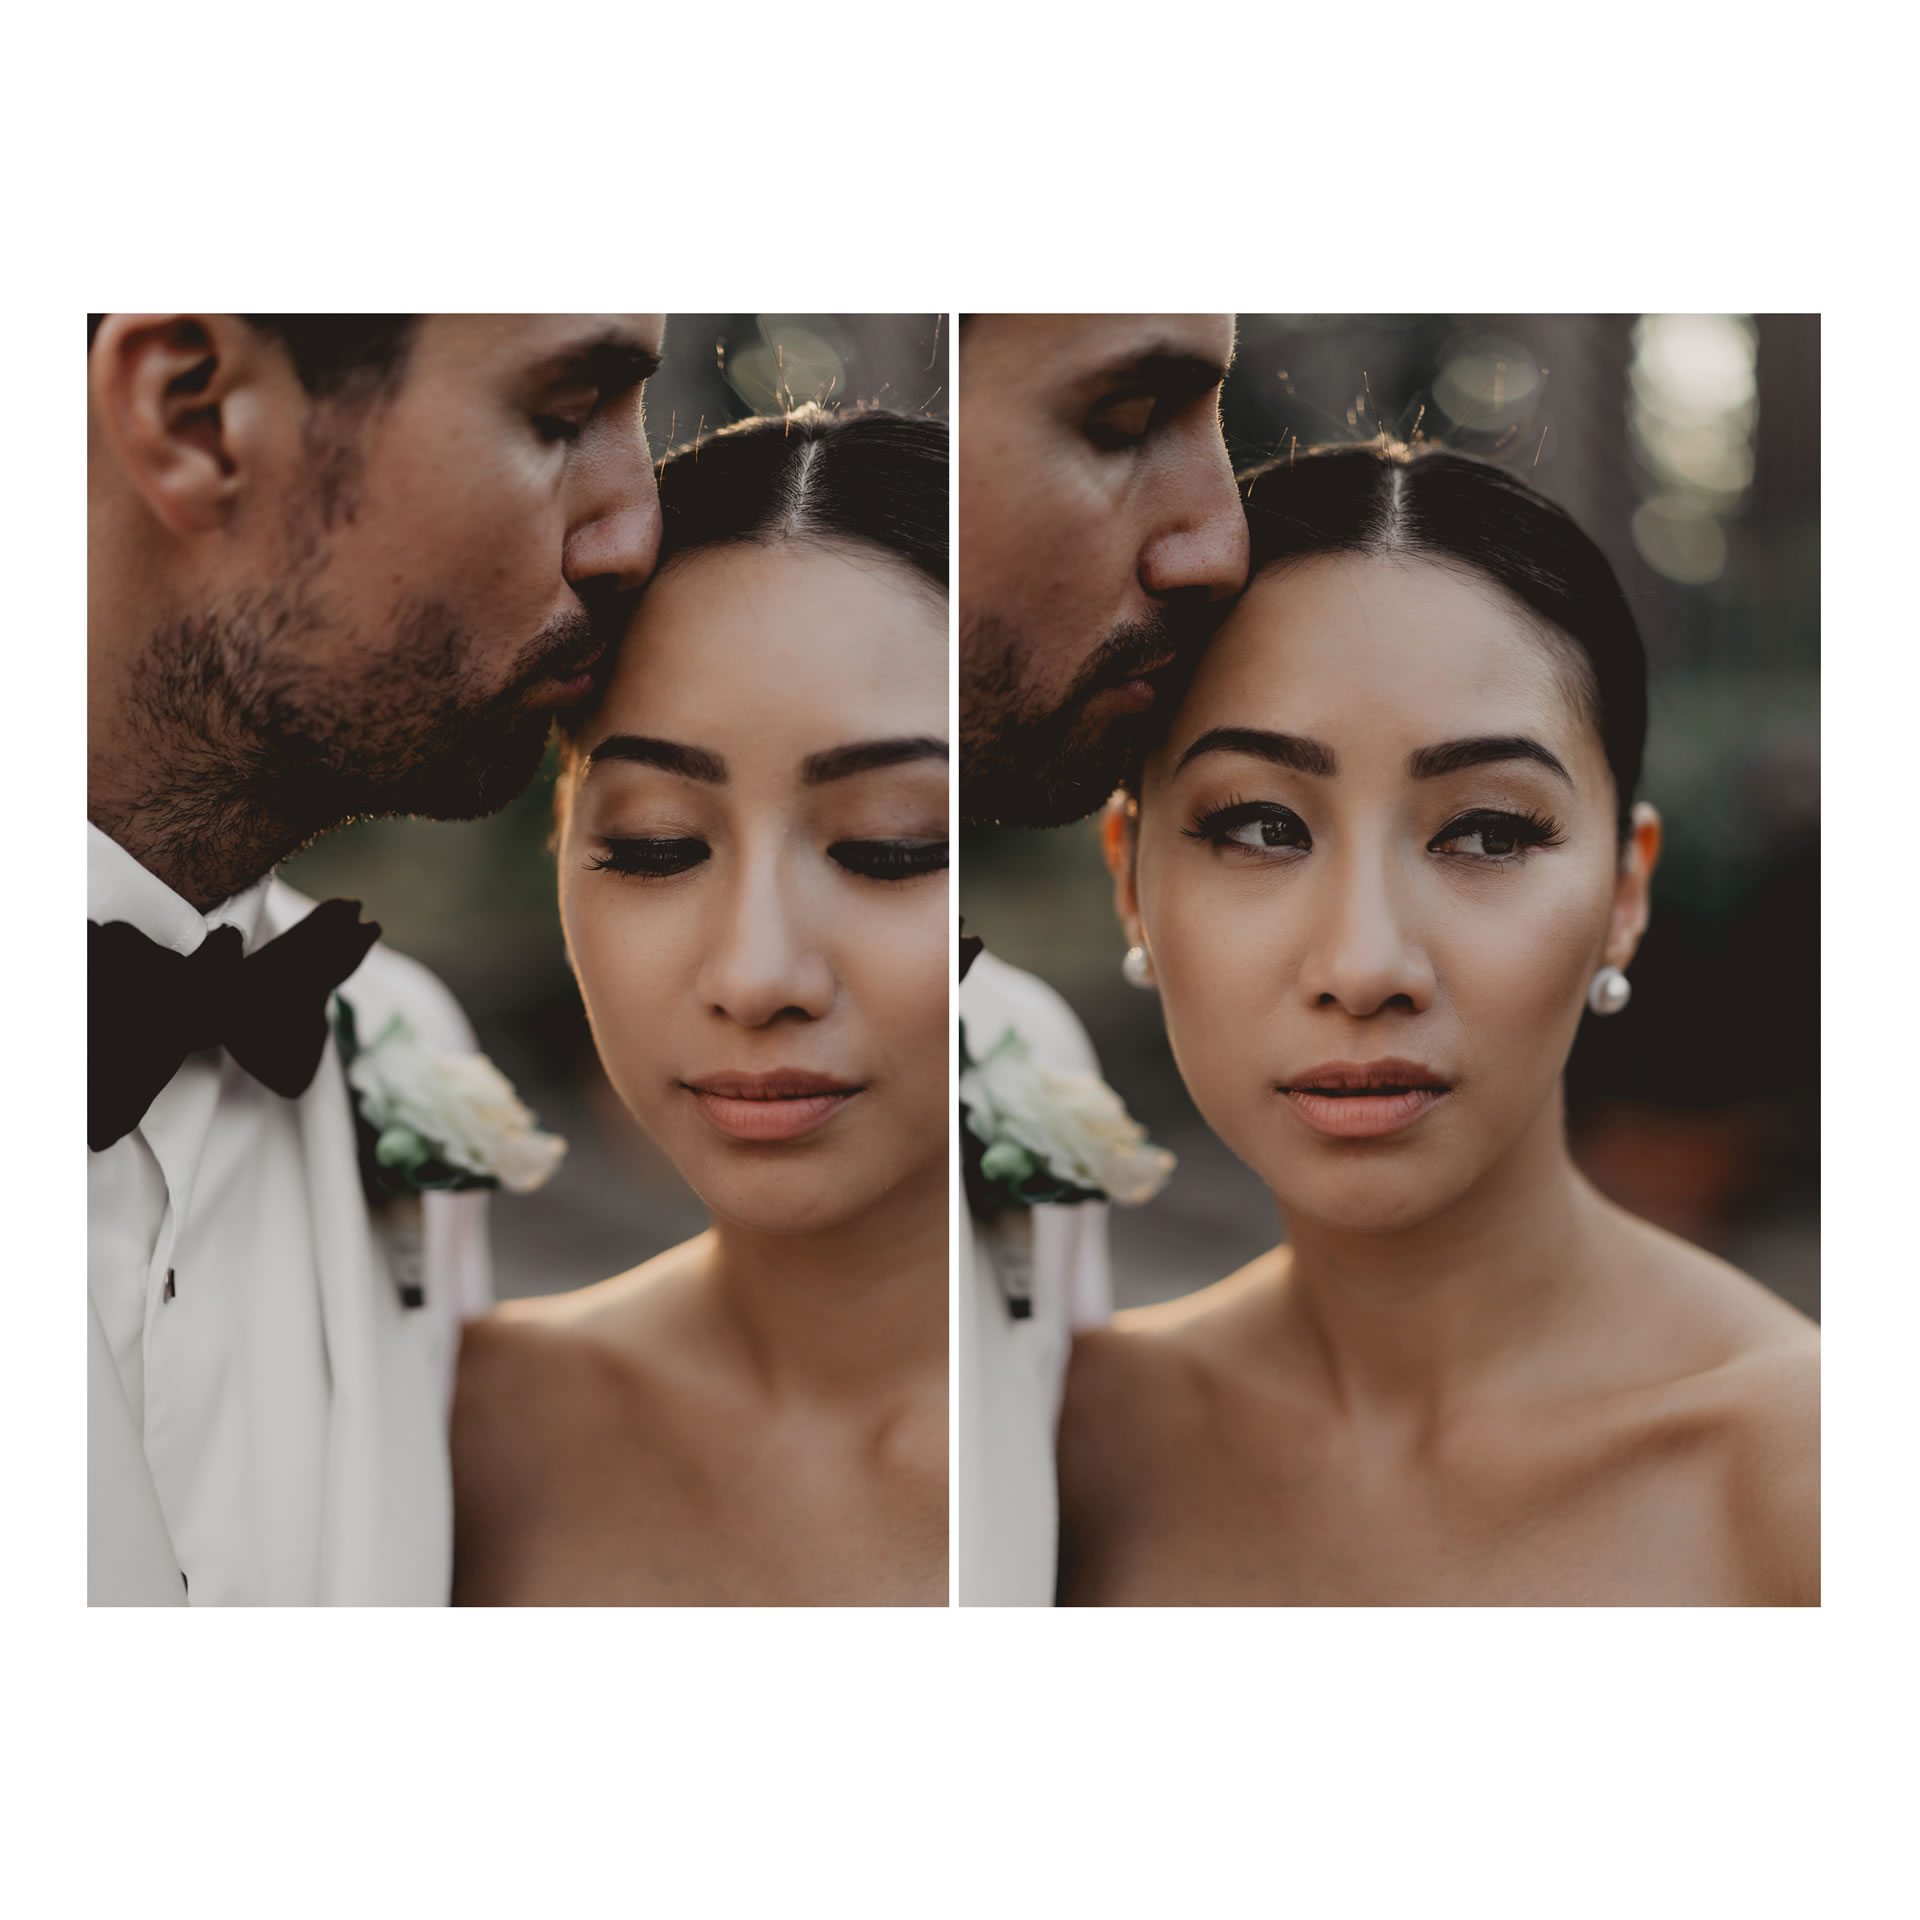 Luxury wedding in Florence (with a chinese tea ceremony) - 30 :: Luxury wedding in Florence (with a chinese tea ceremony) :: Luxury wedding photography - 29 :: Luxury wedding in Florence (with a chinese tea ceremony) - 30